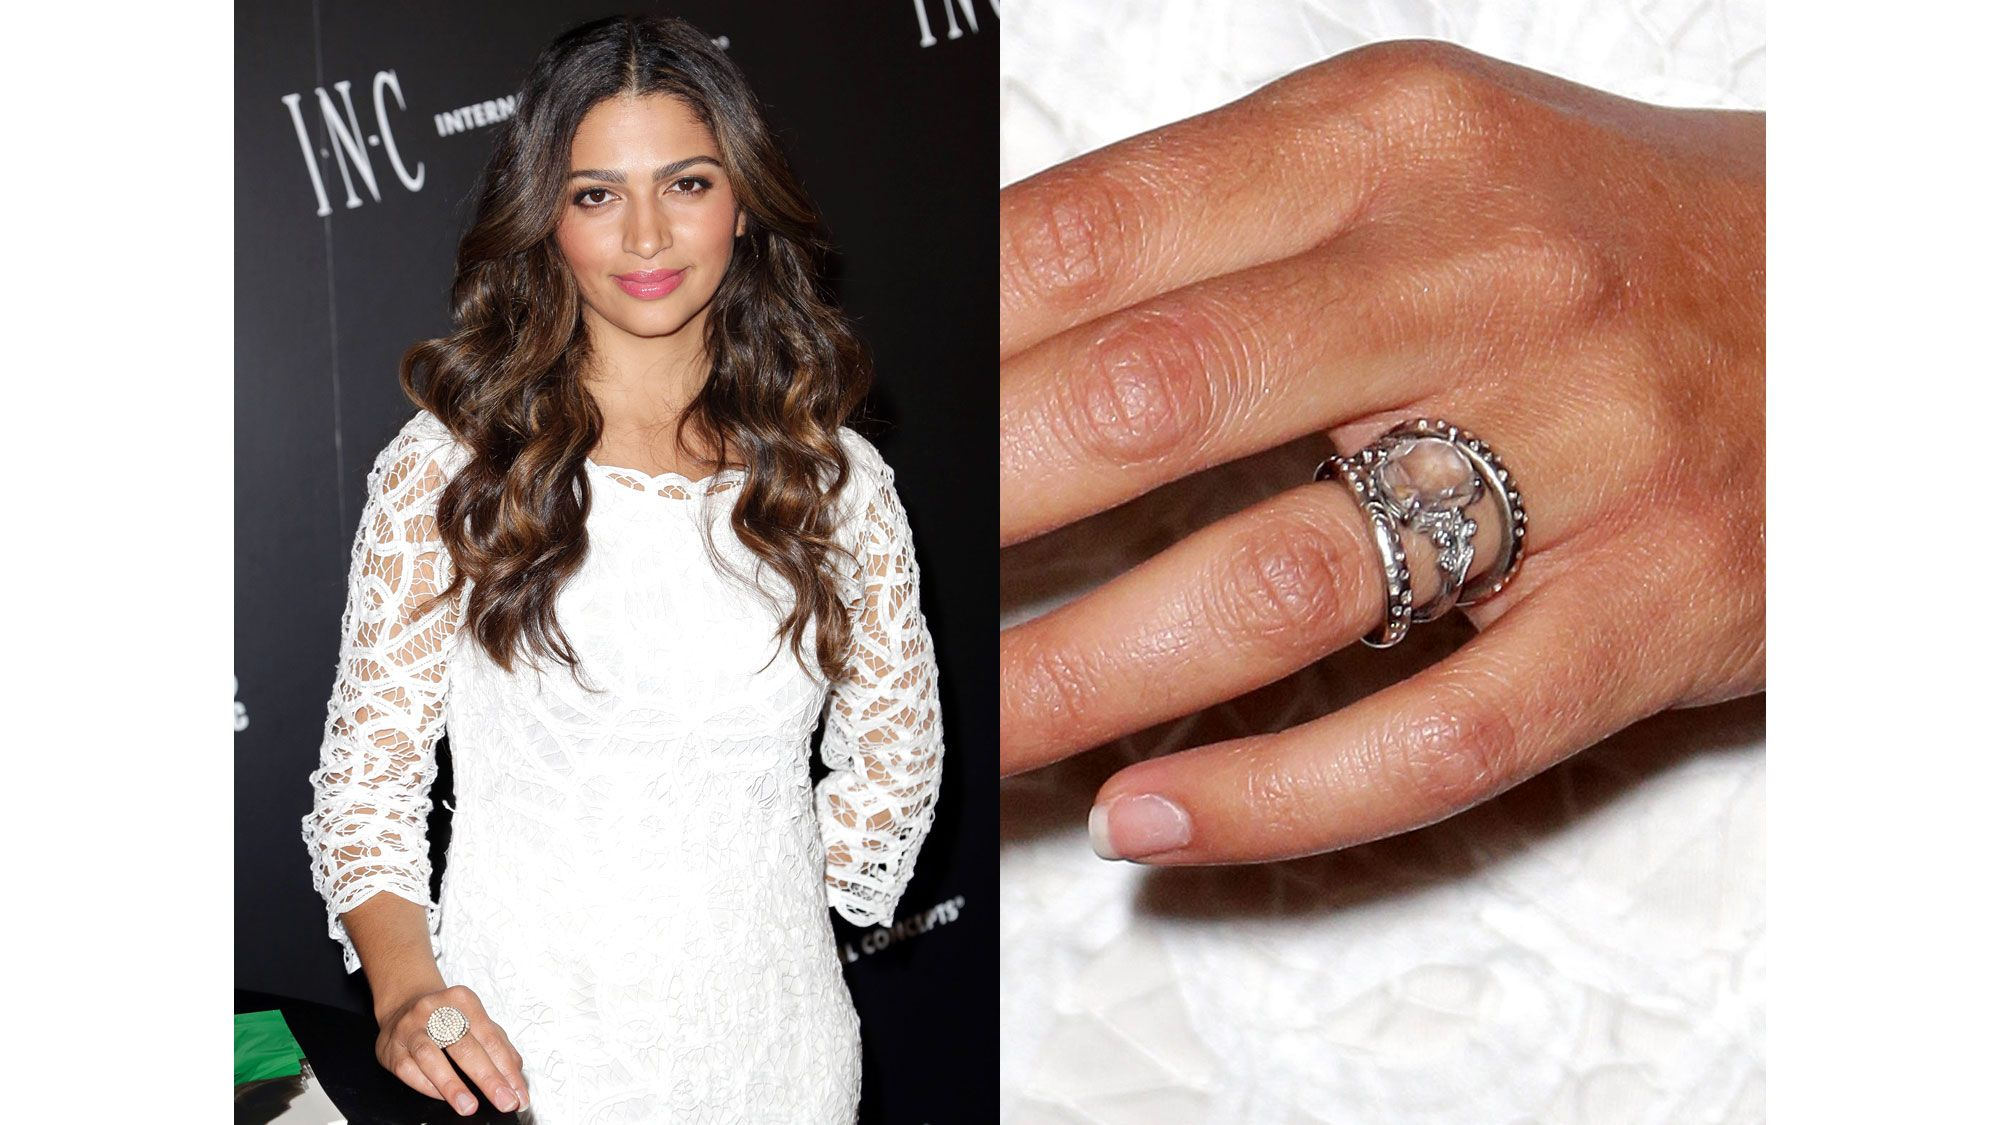 celebrities threads celeb rings purseforum page engagement celebrity r wedding